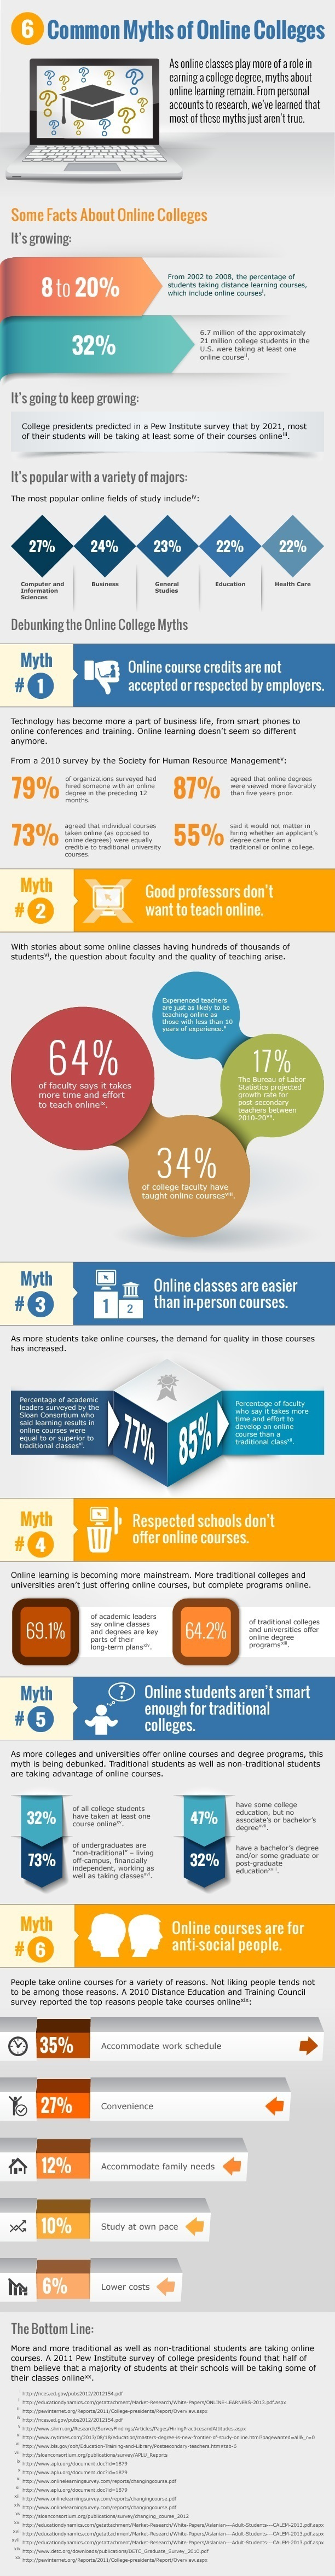 6 Myths of Online Colleges Infographic